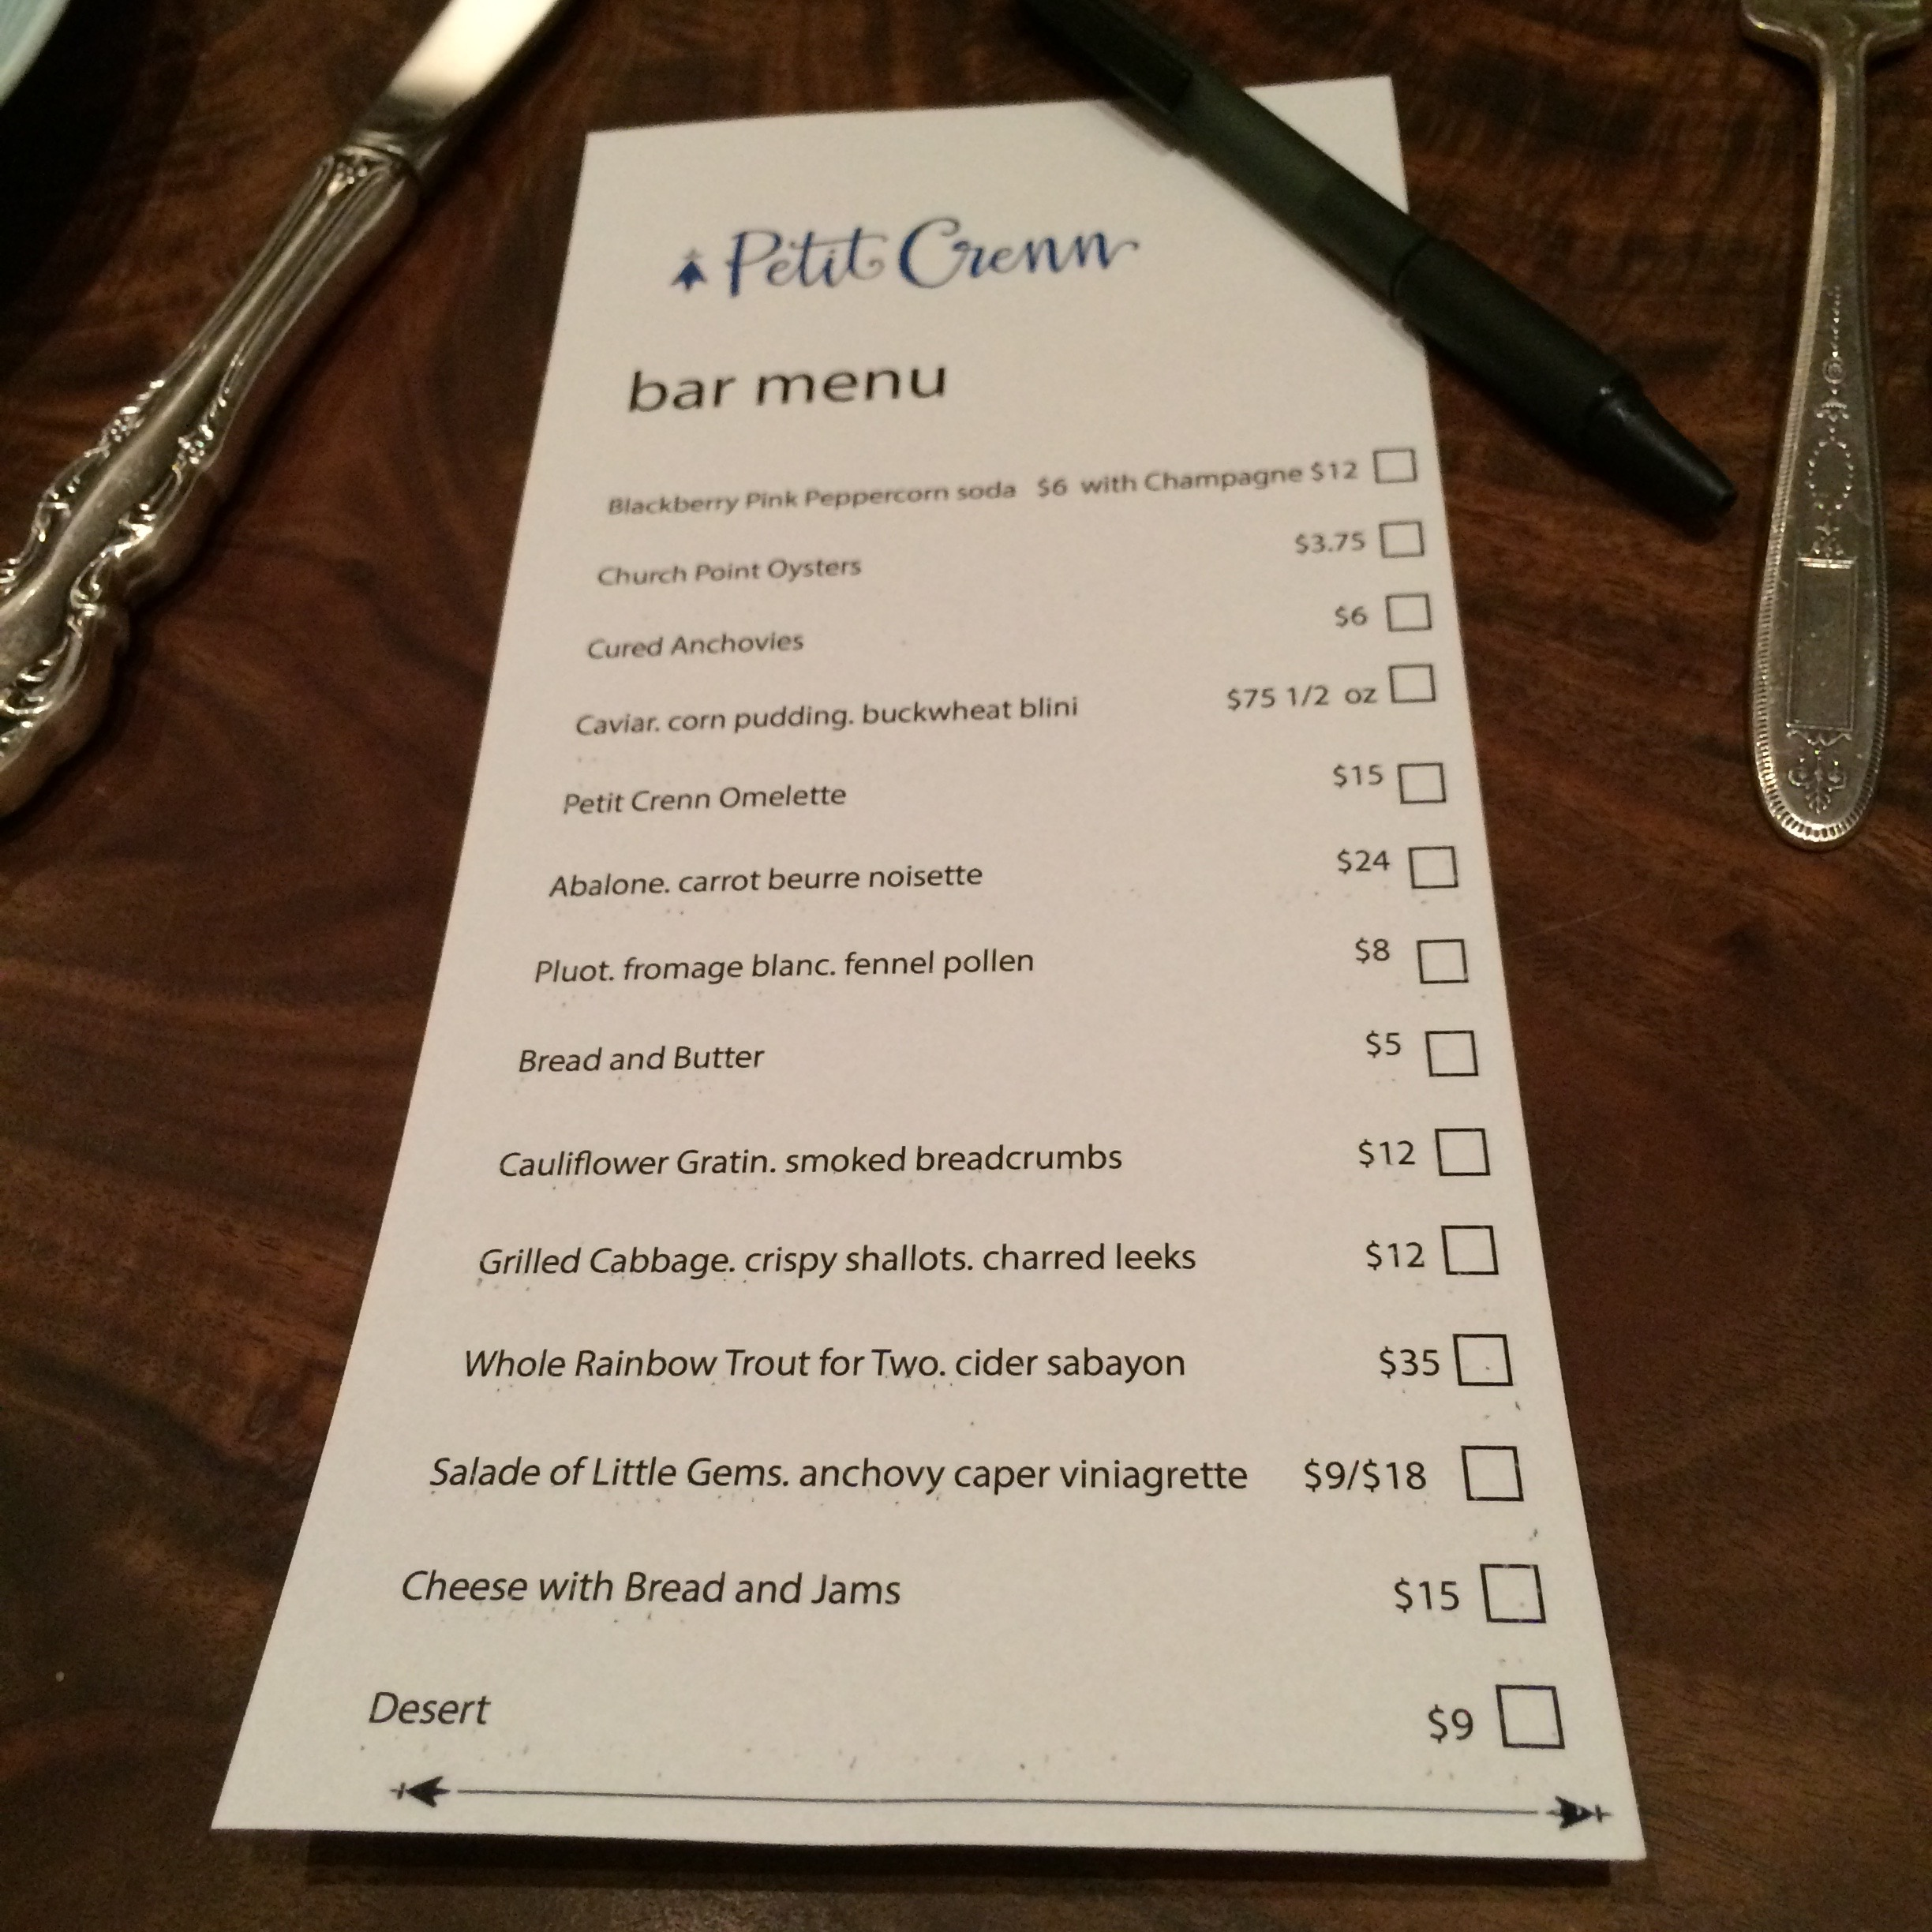 Much That We Decided To Return For The A La Carte Experience At Bar Were Presented With Menu And Pen Check Off Items Wanted